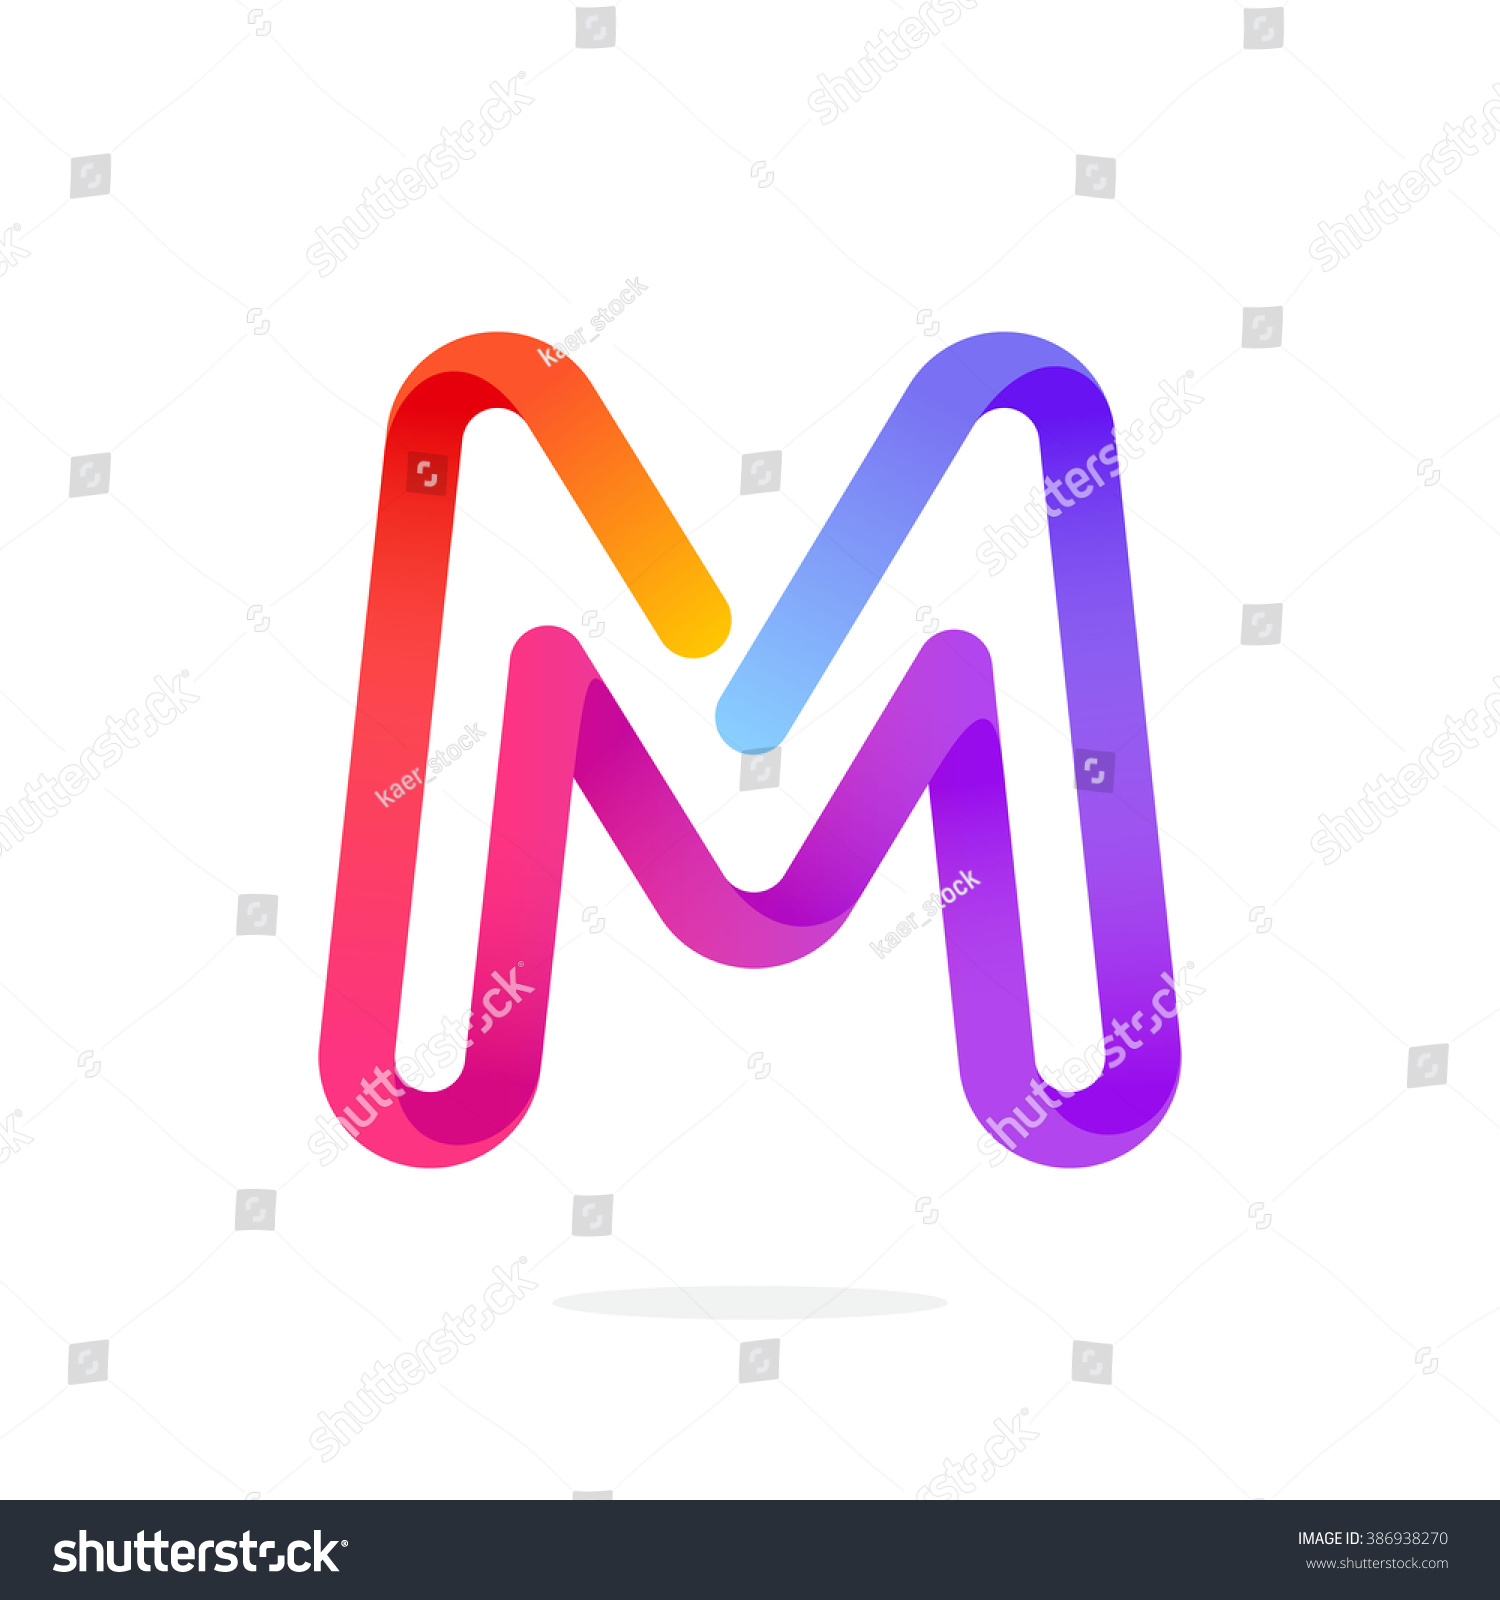 M Letter Colorful Logo Font Style Vector Design Template Elements For Your Application Or